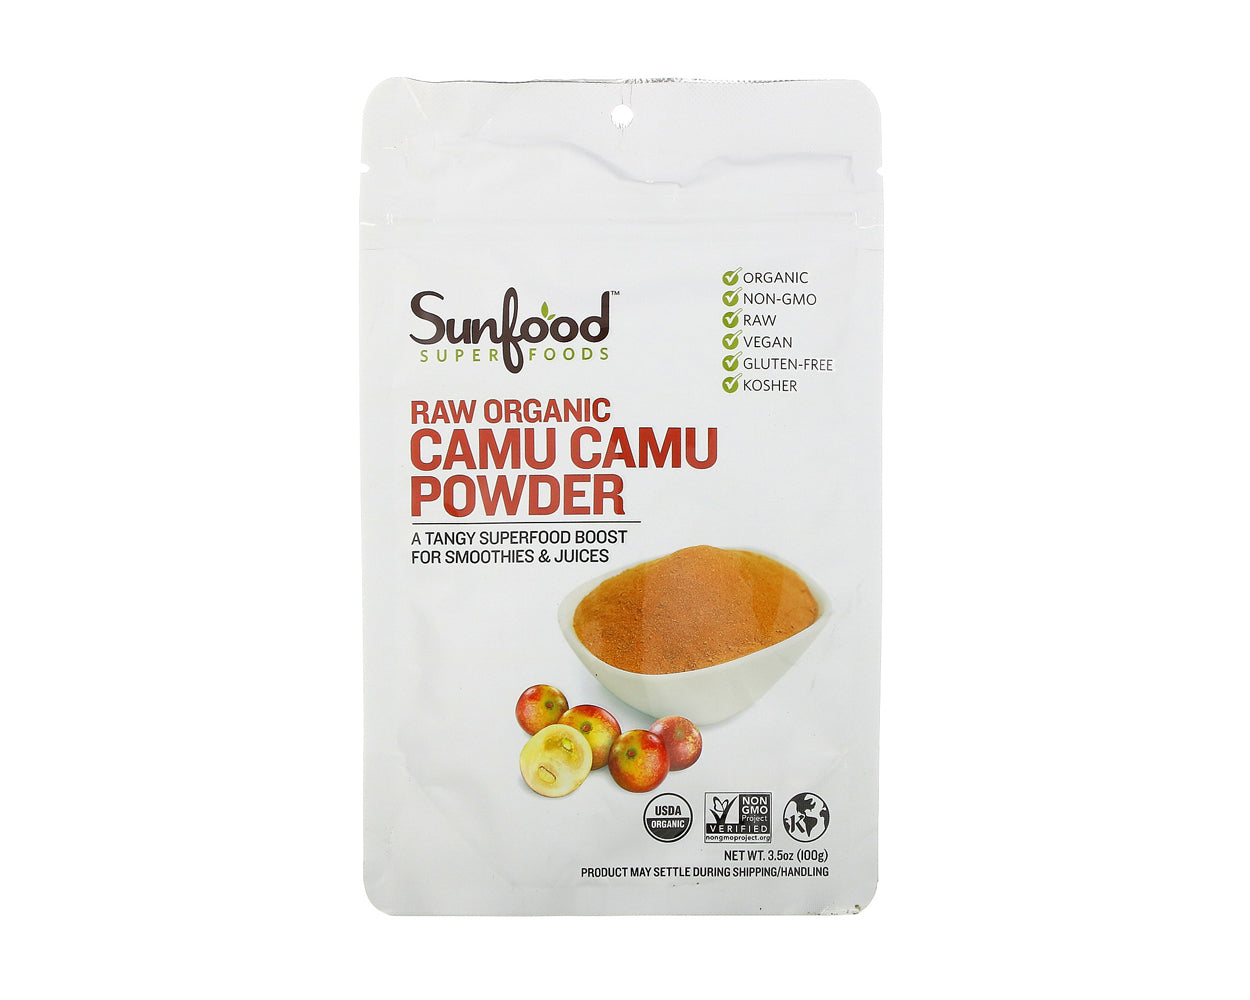 Camu Camu Powder, 3.5 oz, Organic, Raw